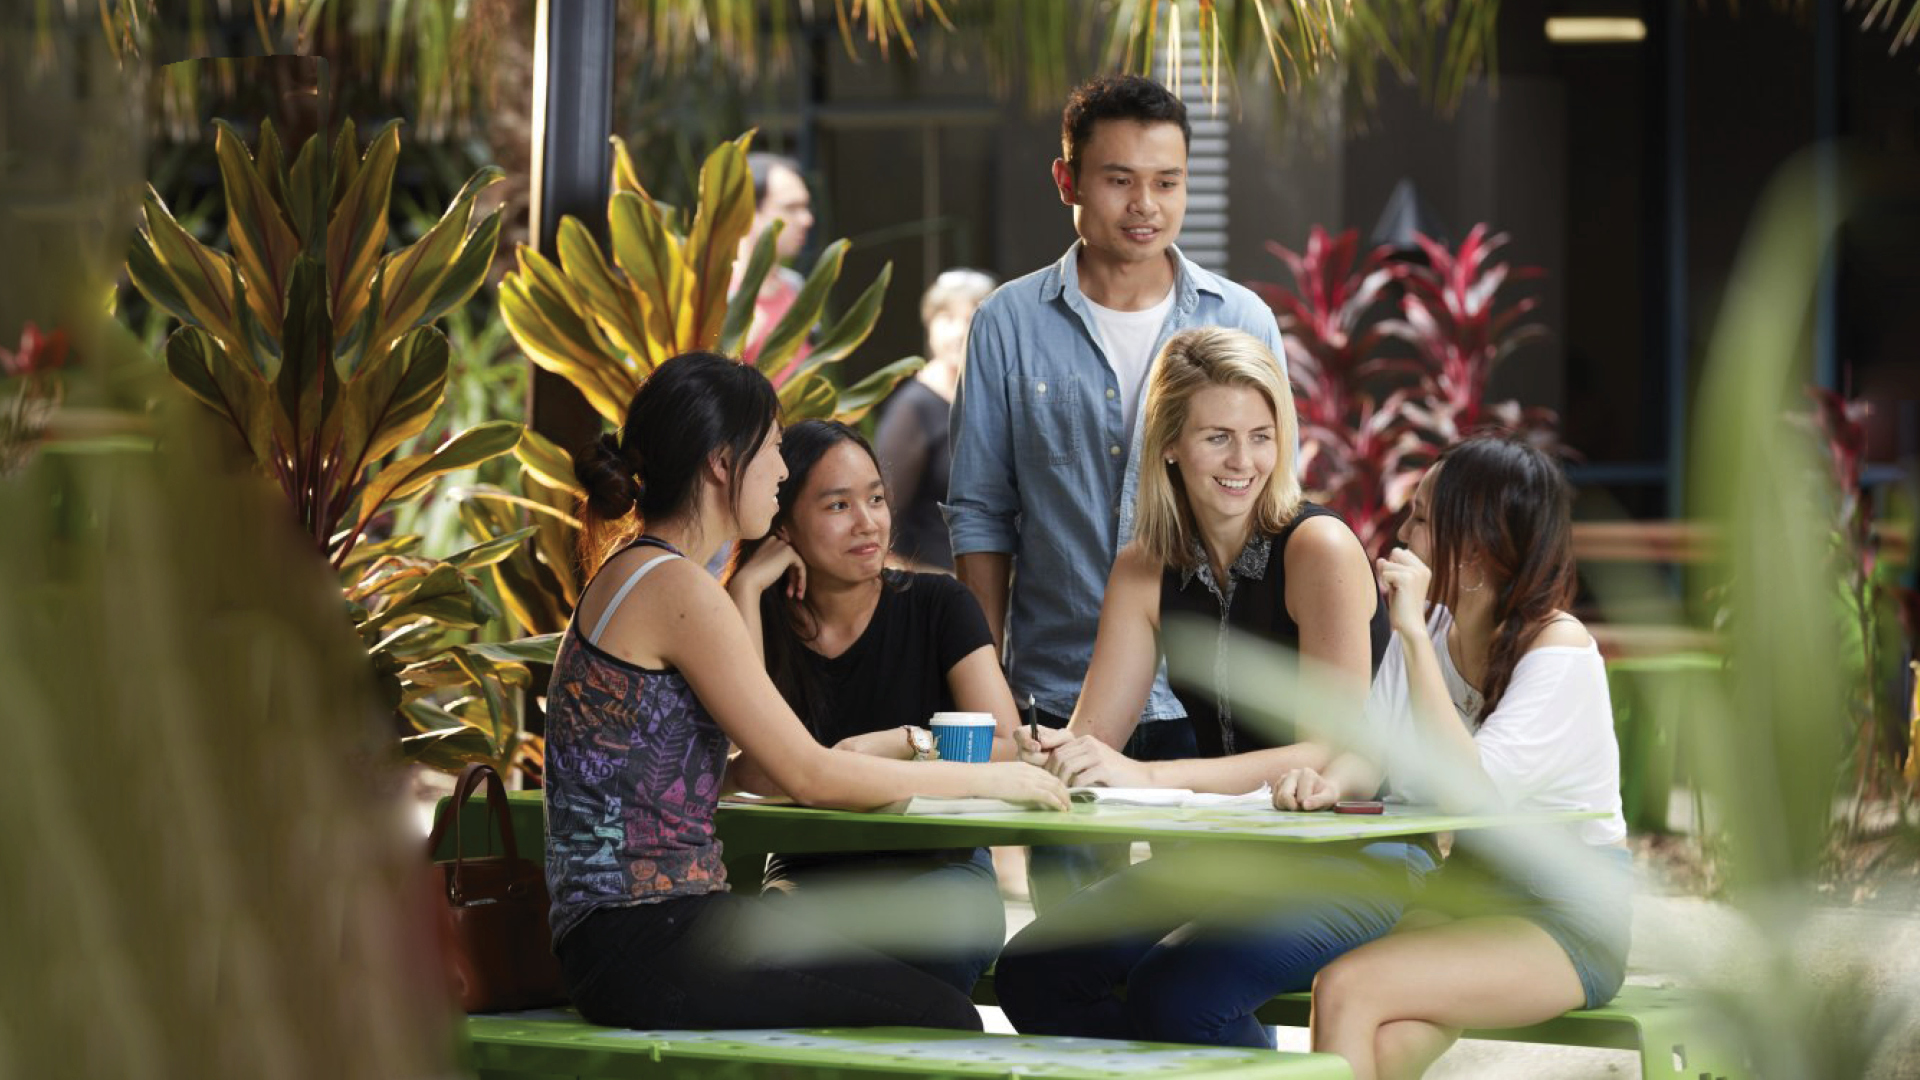 generic-campus-hero-f-multicultural-students-in-tropical-garden-feature.jpg